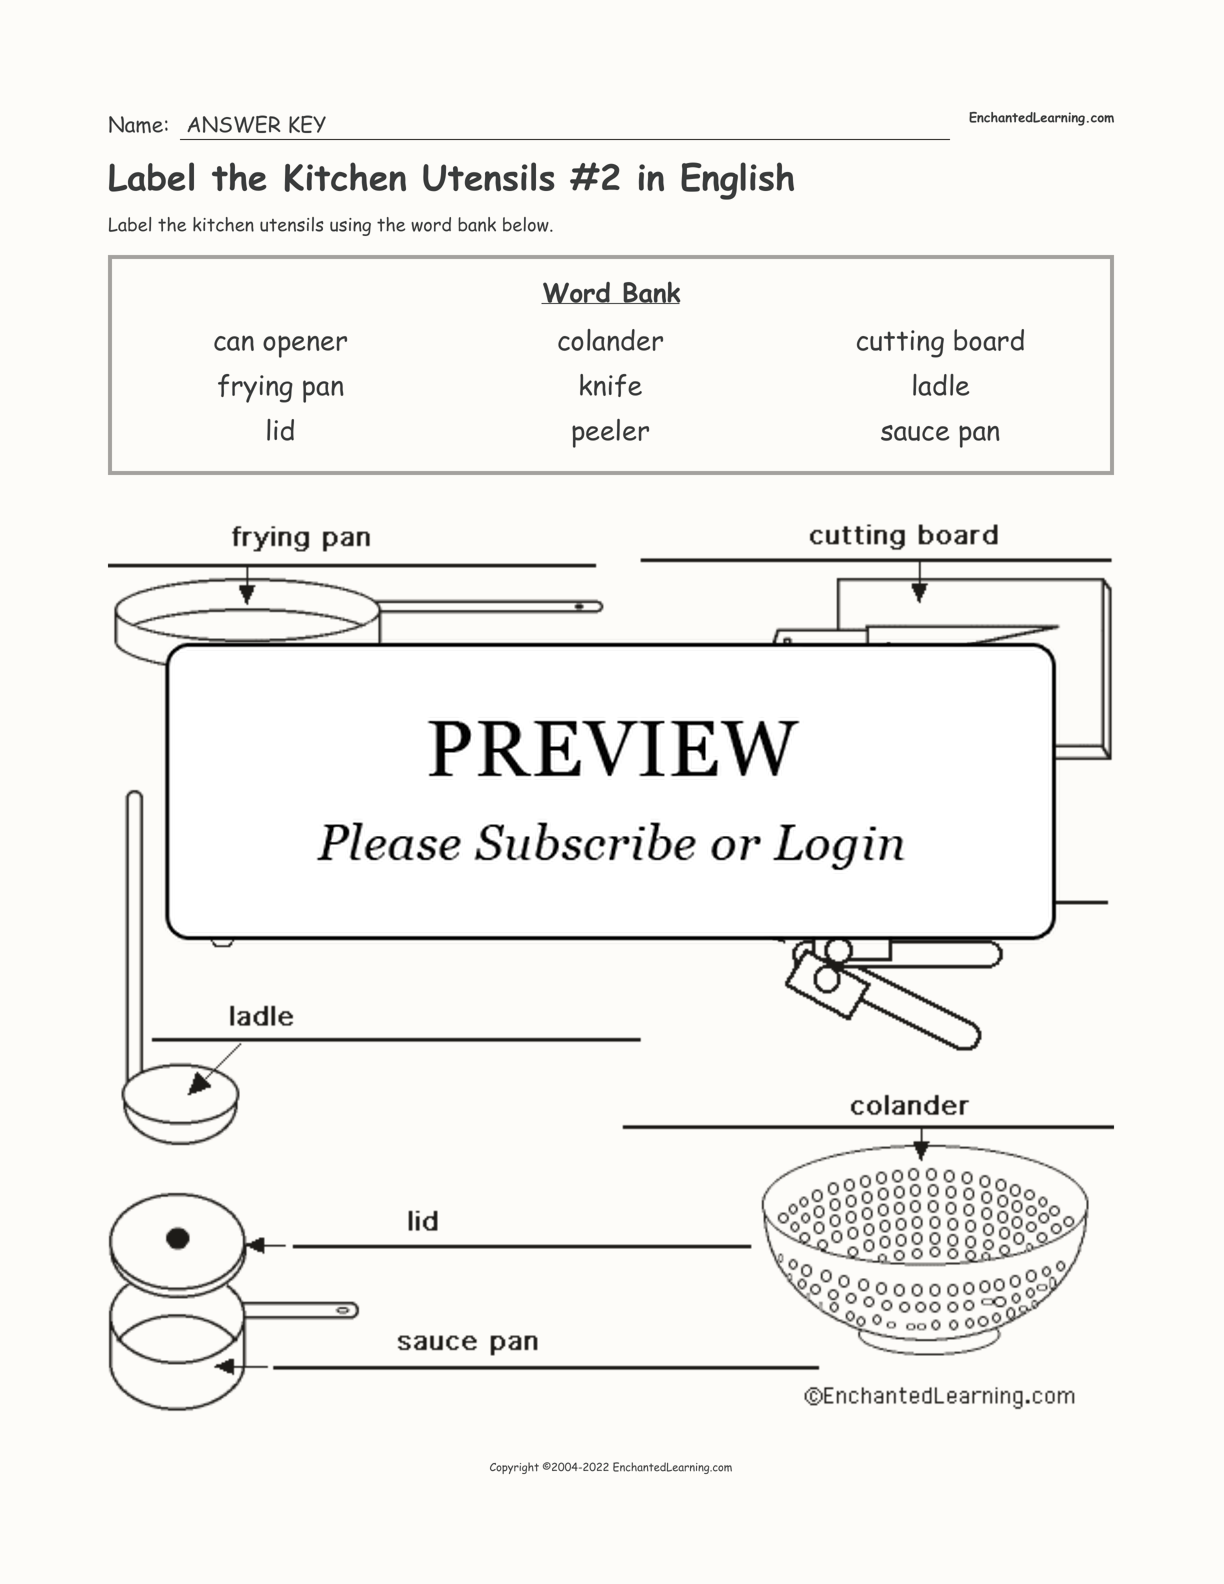 Label the Kitchen Utensils #2 in English interactive worksheet page 2